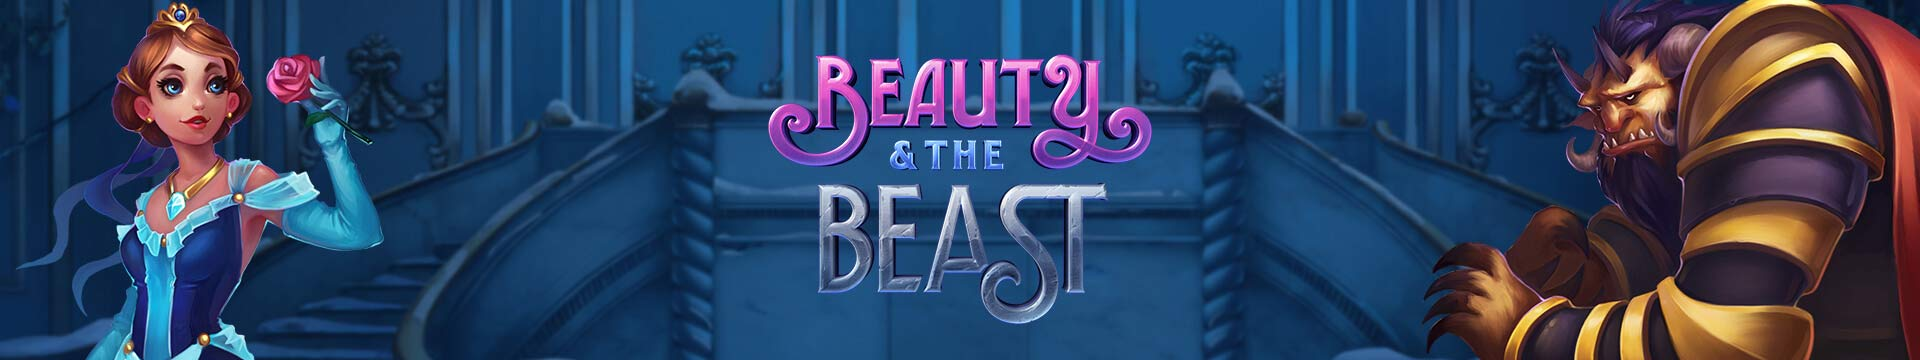 Slider Banner - Beauty and the Beast